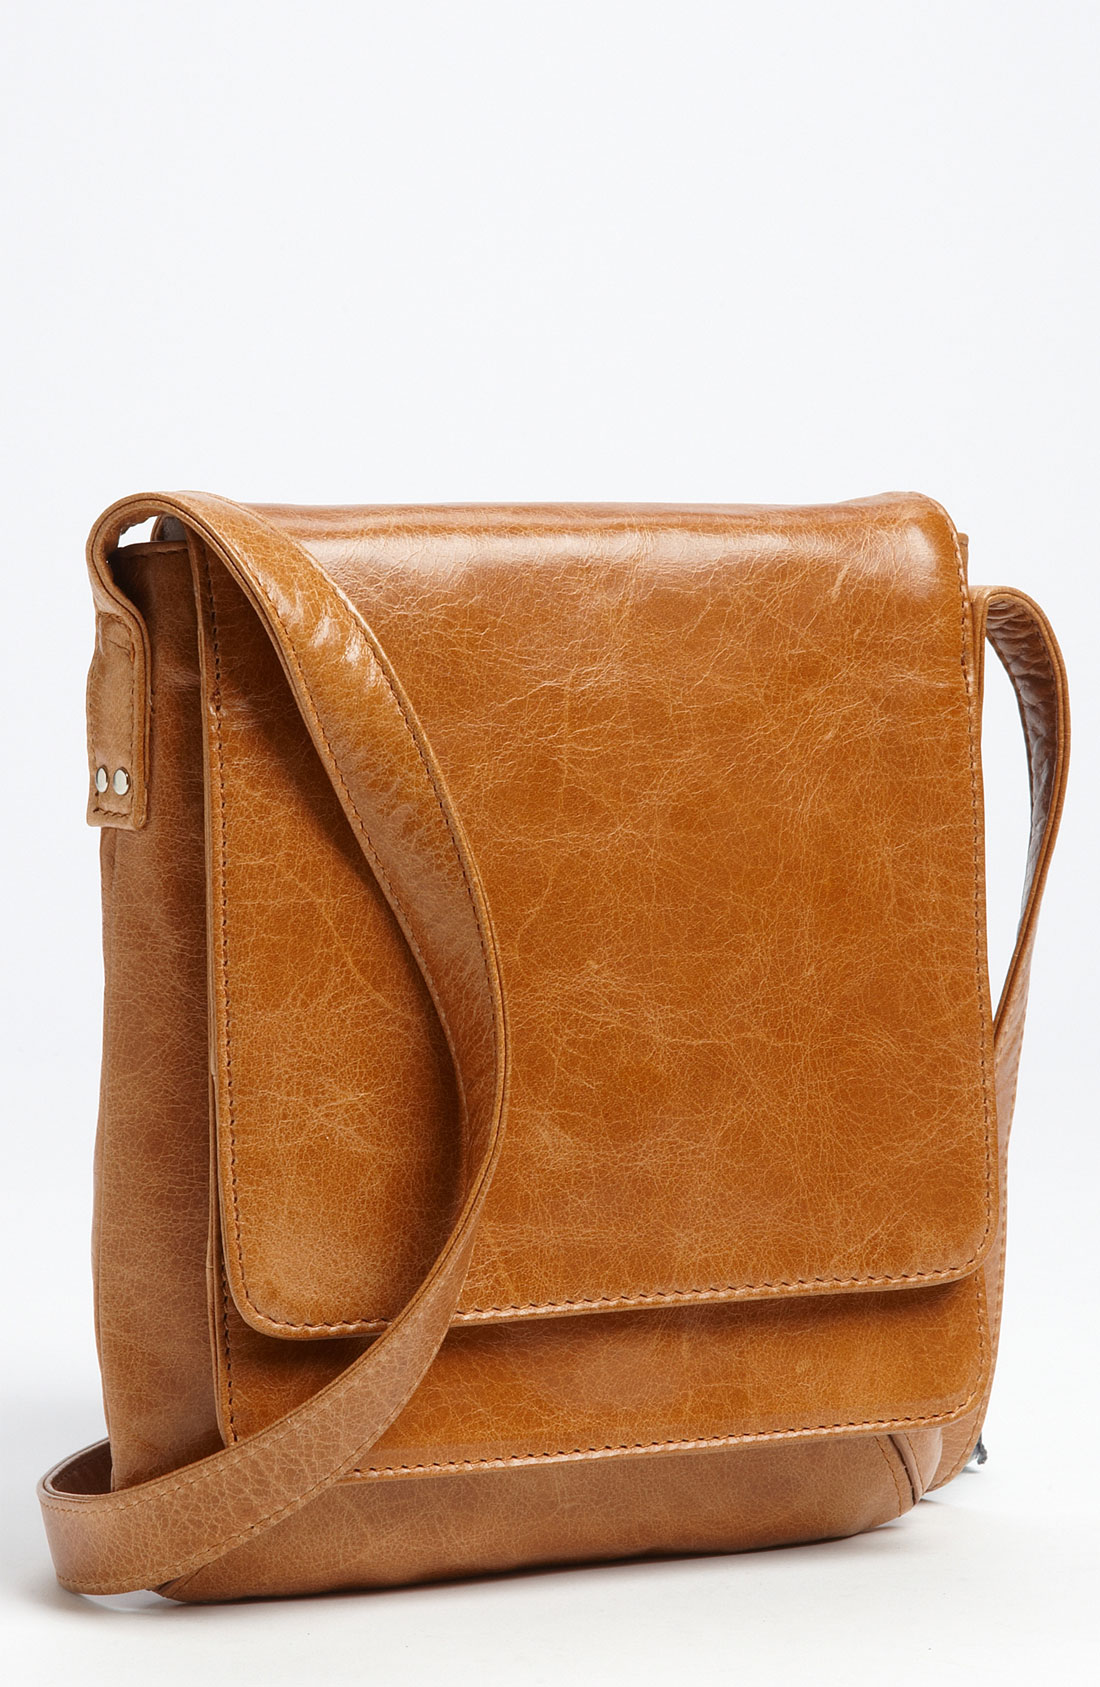 Hobo International Carly Crossbody Bag in Brown | Lyst